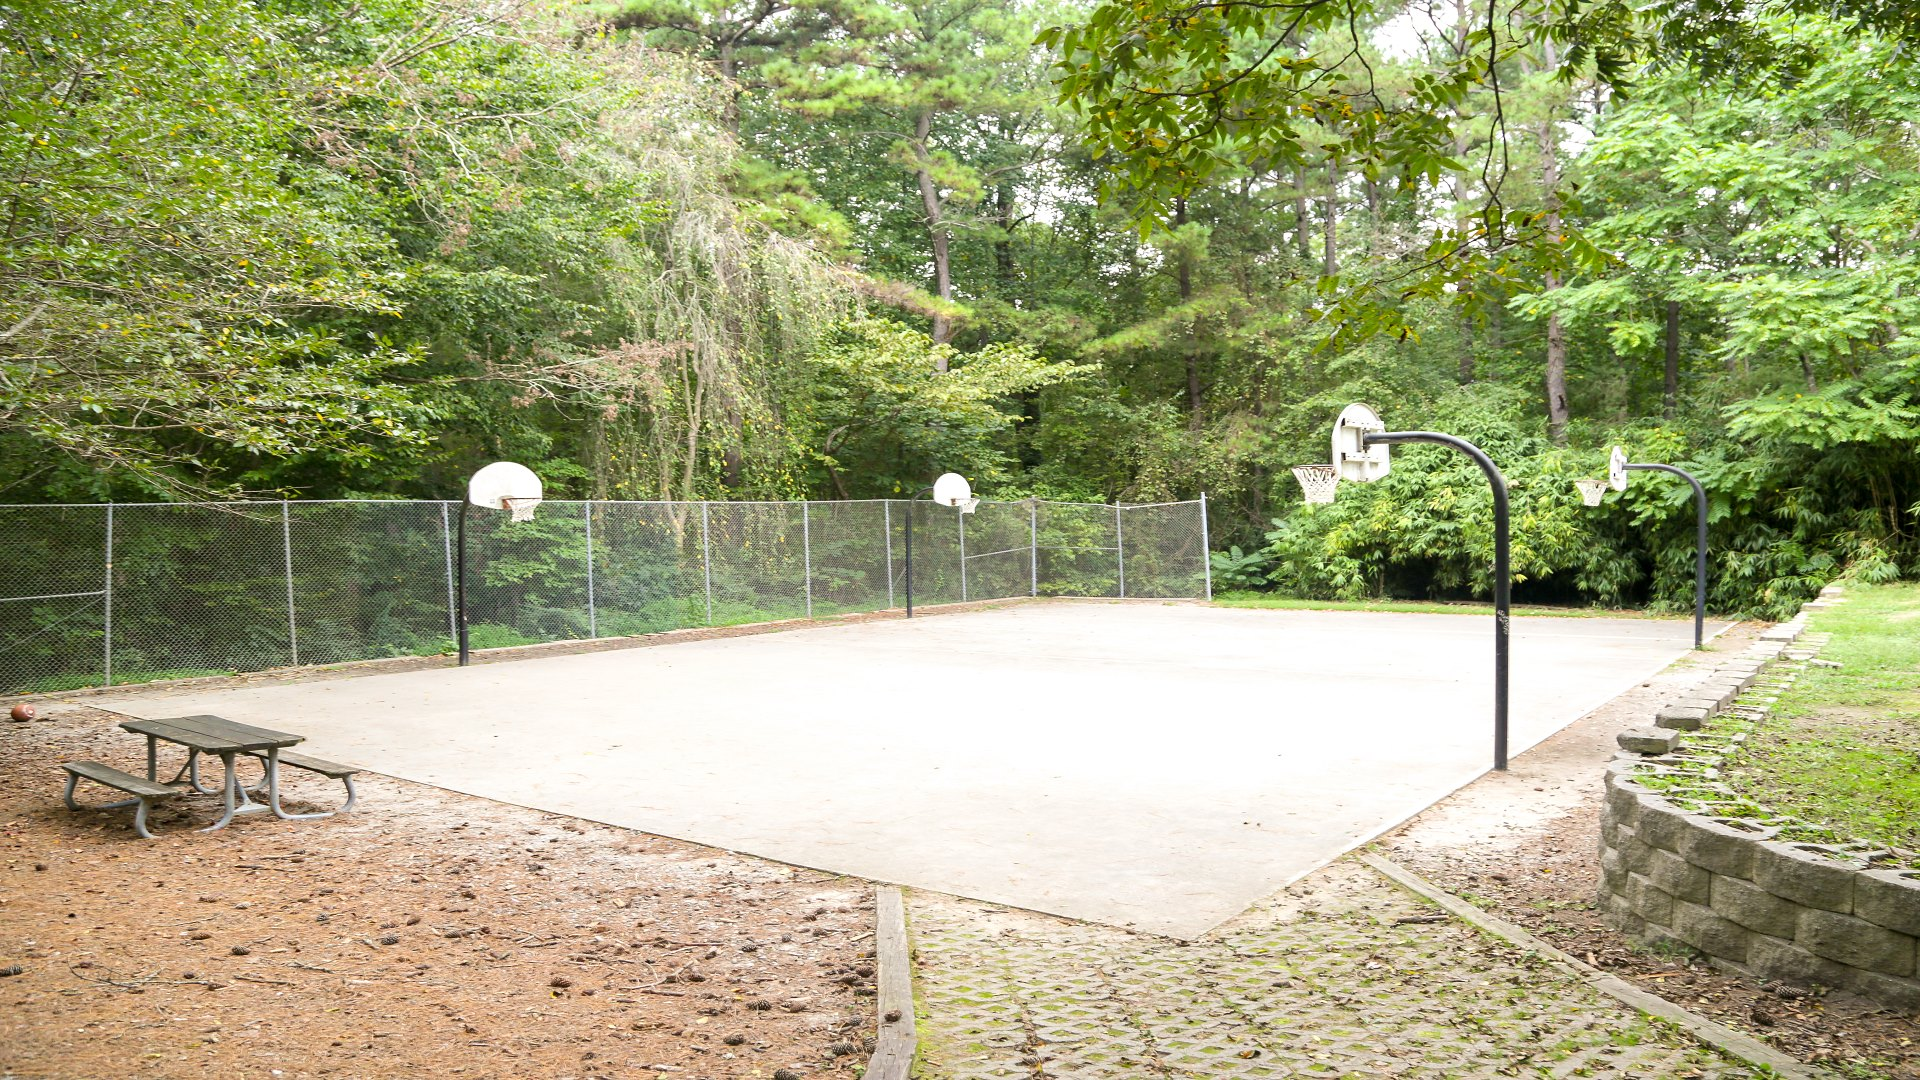 Outdoor basketball courts with concrete surface